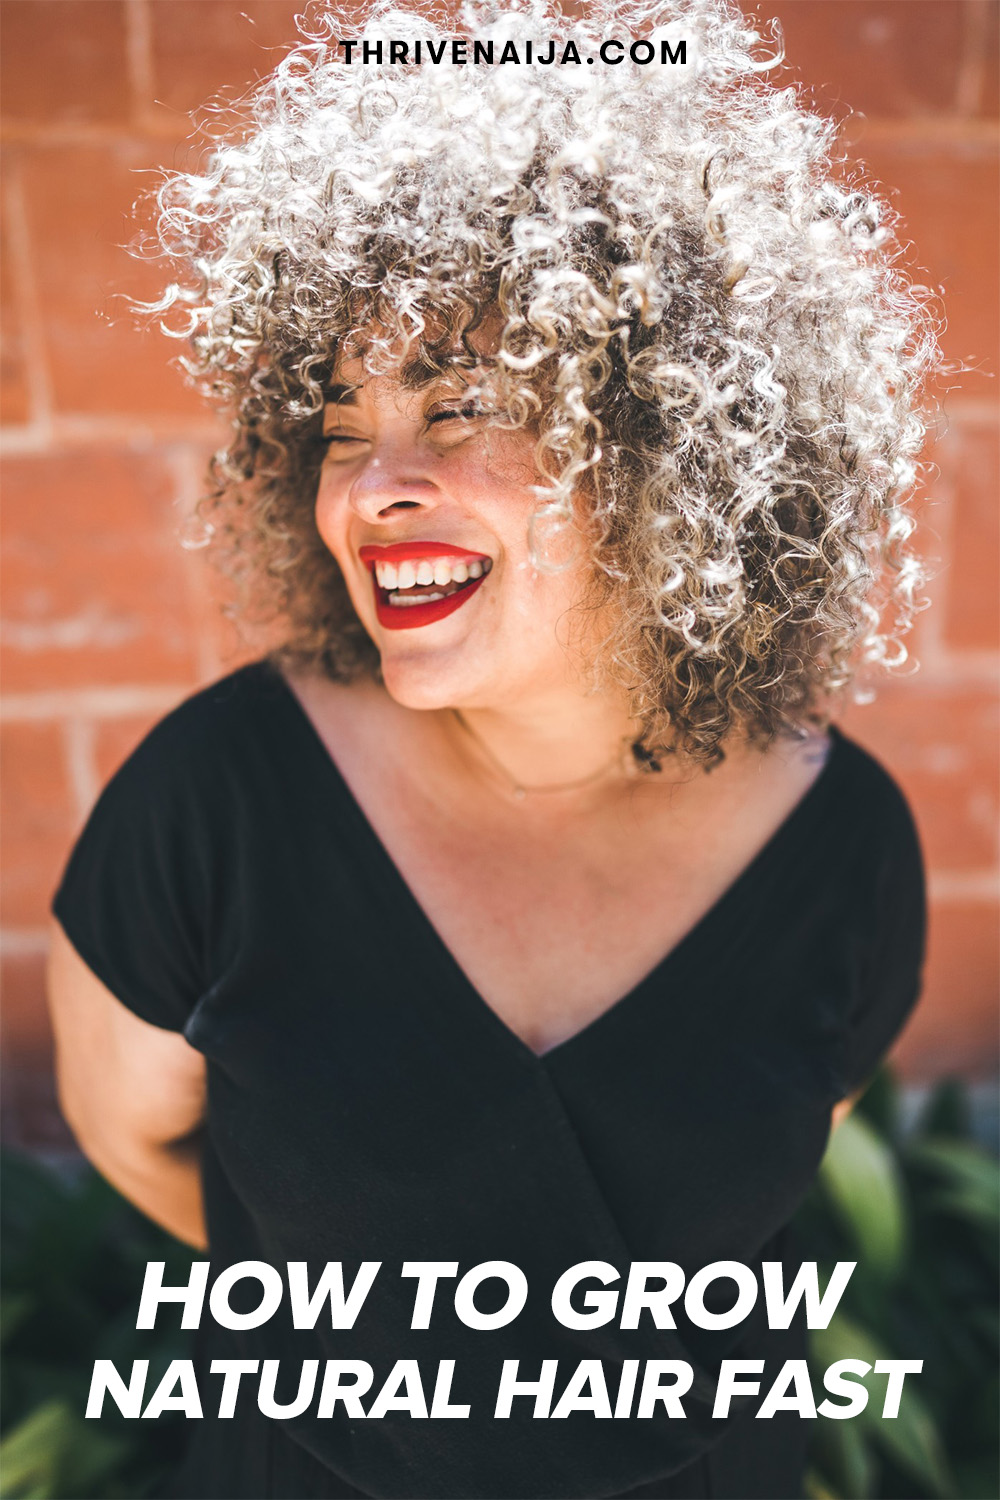 How to Grow Natural Hair Fast: The Complete Guide